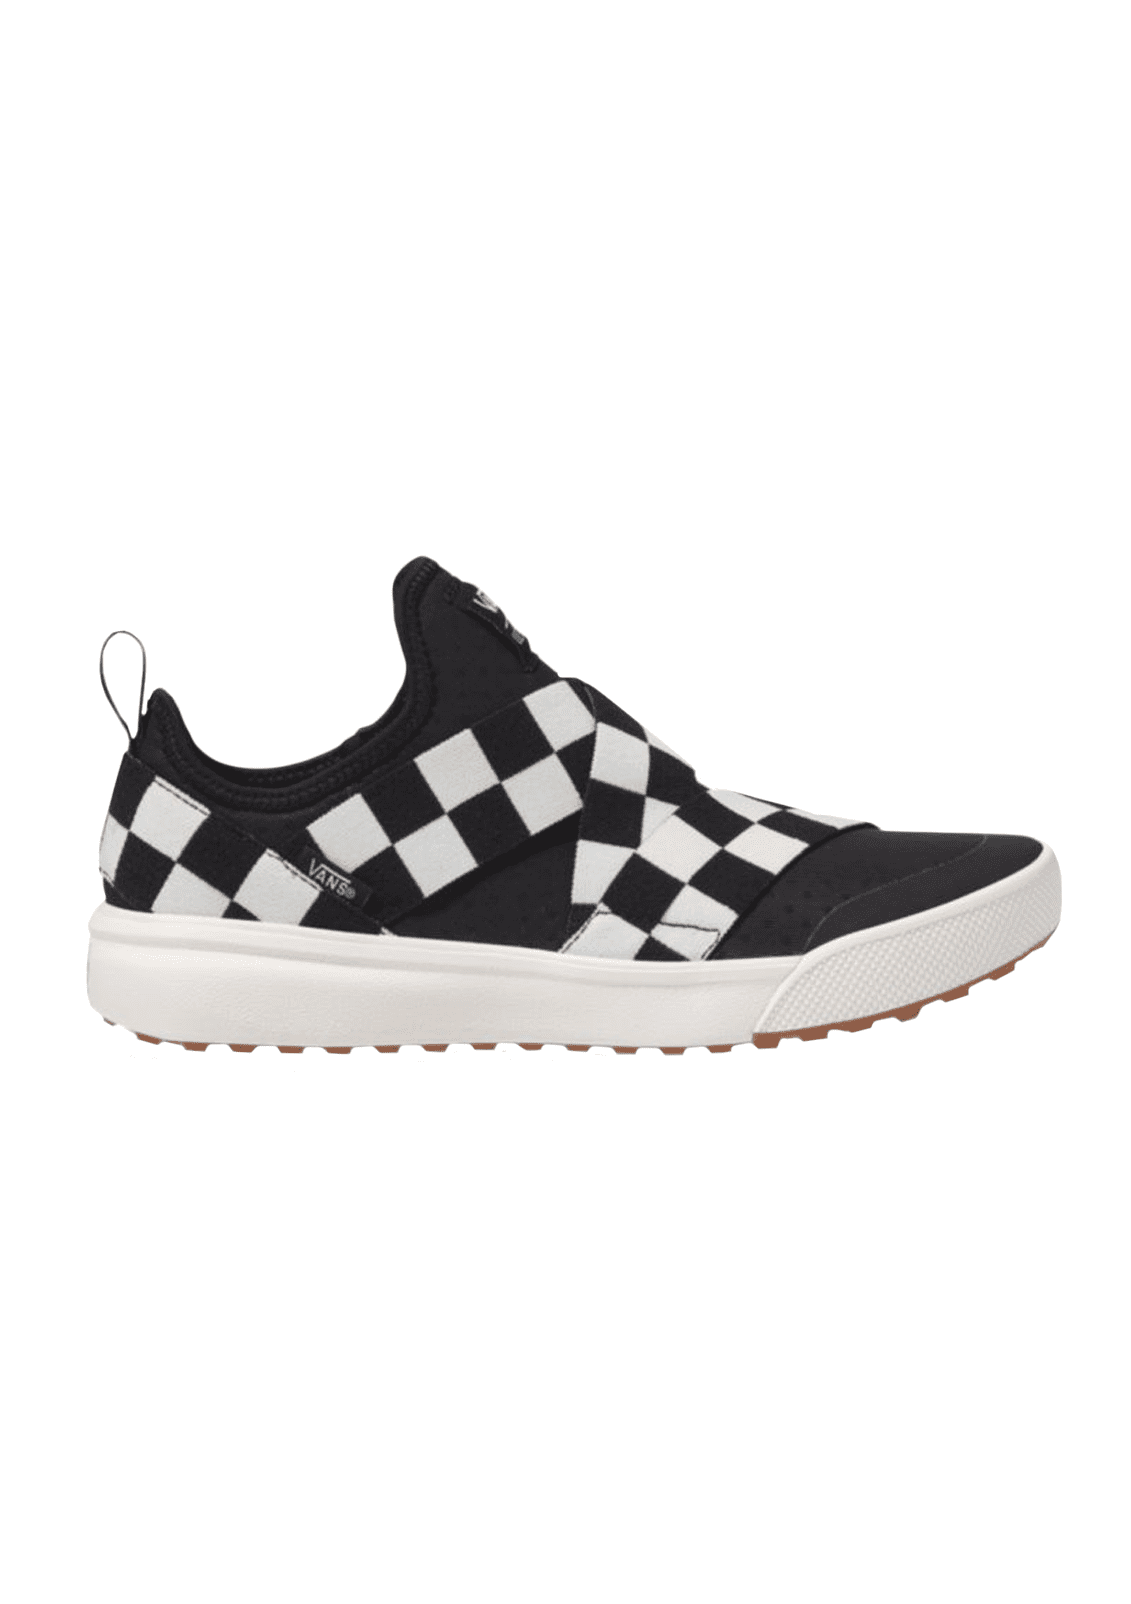 Women's Ultrarange Gore Mega Check Shoe.